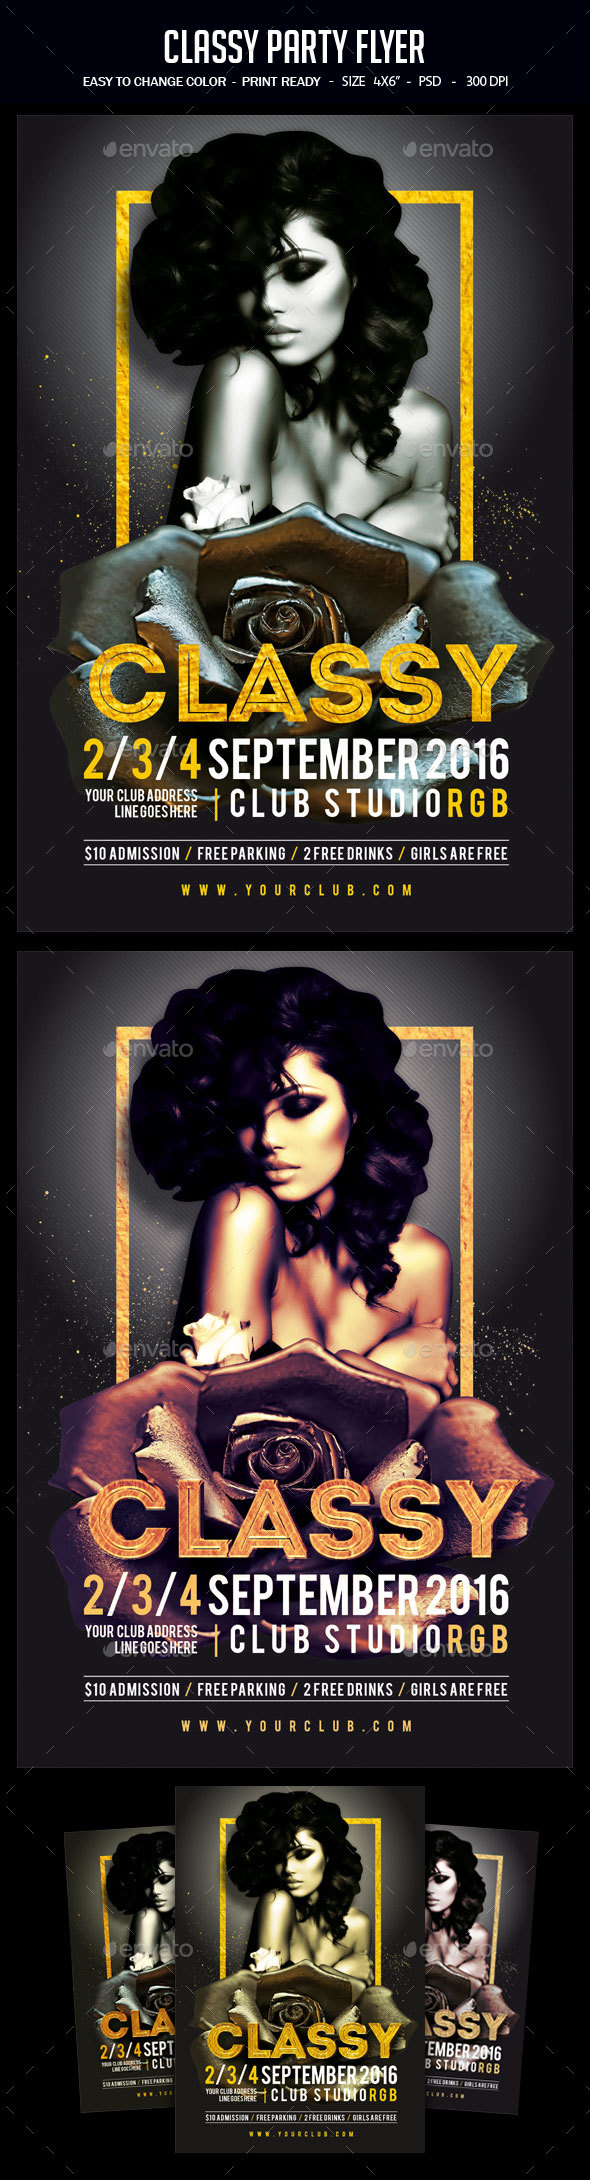 Classy Party Flyer - Clubs & Parties Events